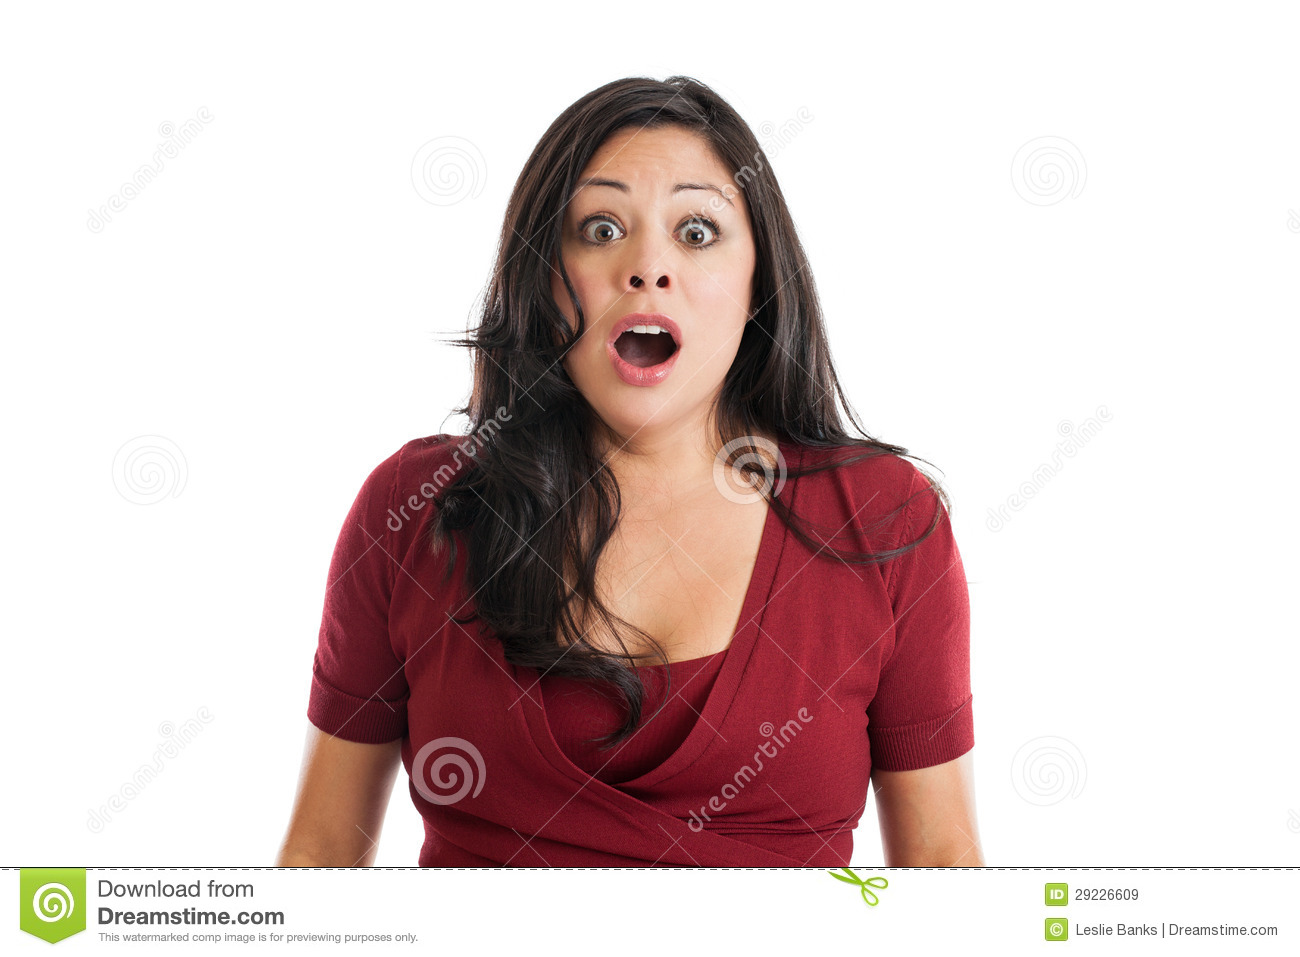 Surprised Woman Expression Royalty Free Stock Images - Image: 29226609